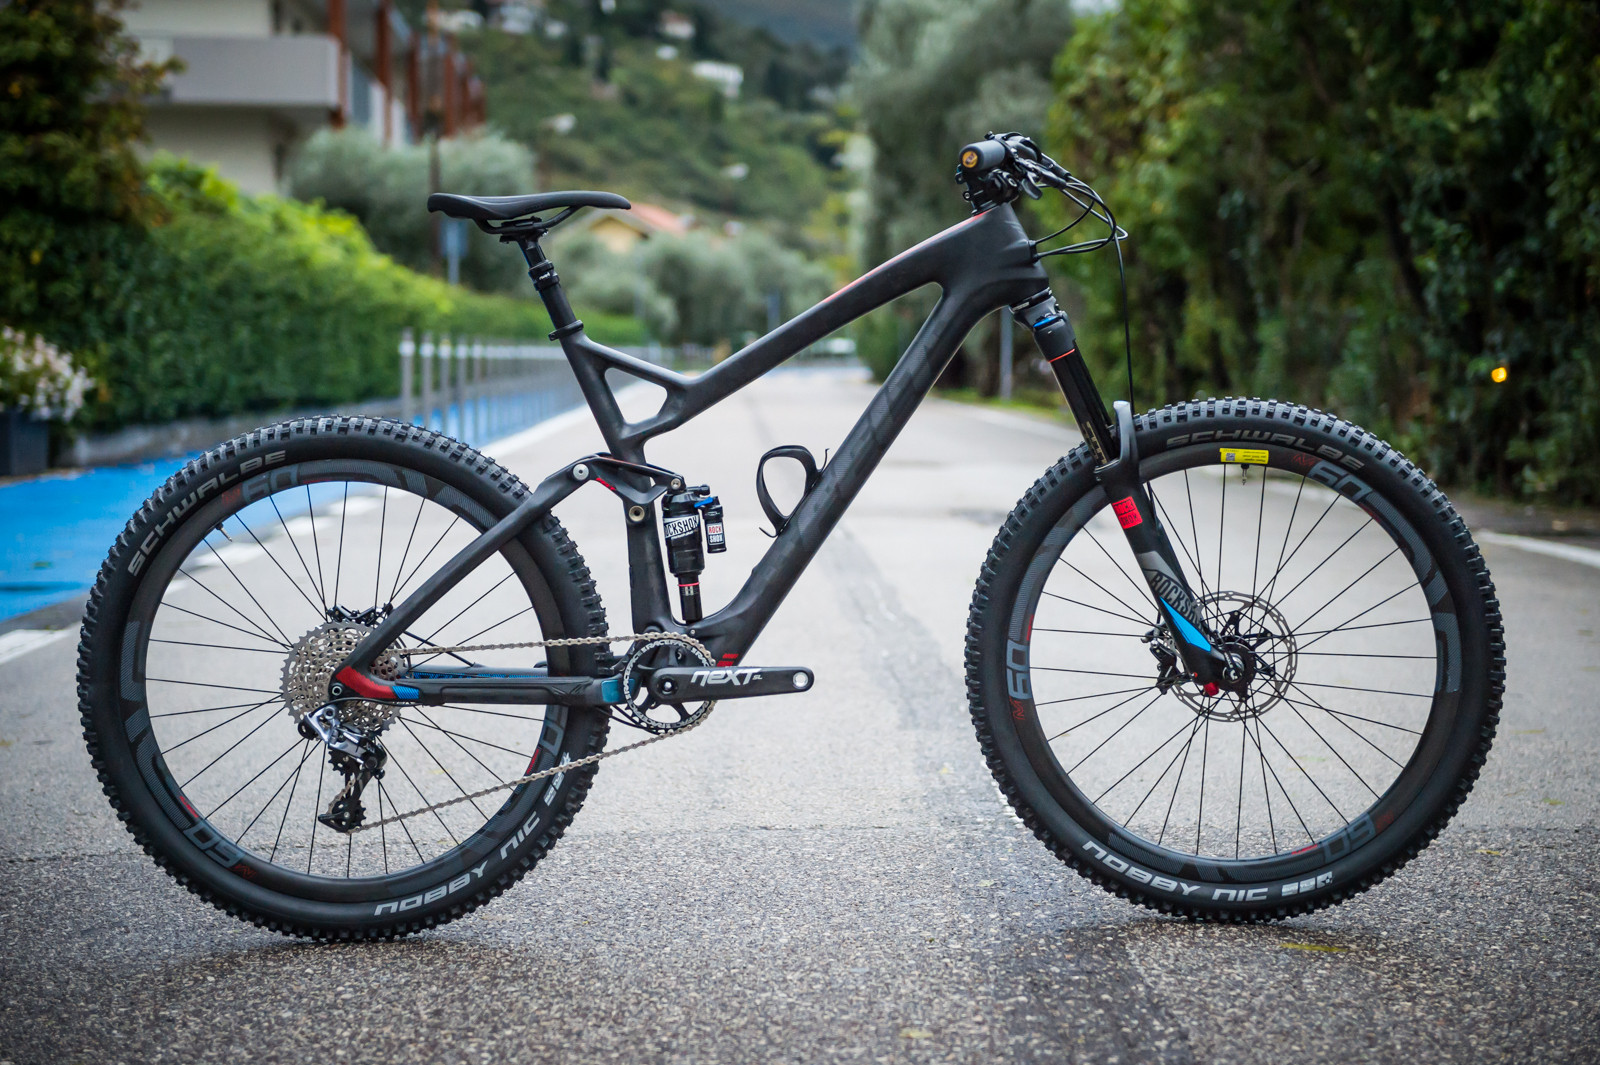 366d1f016f6 First Look First Ride  Felt Decree FRD - Mountain Bikes Feature ...